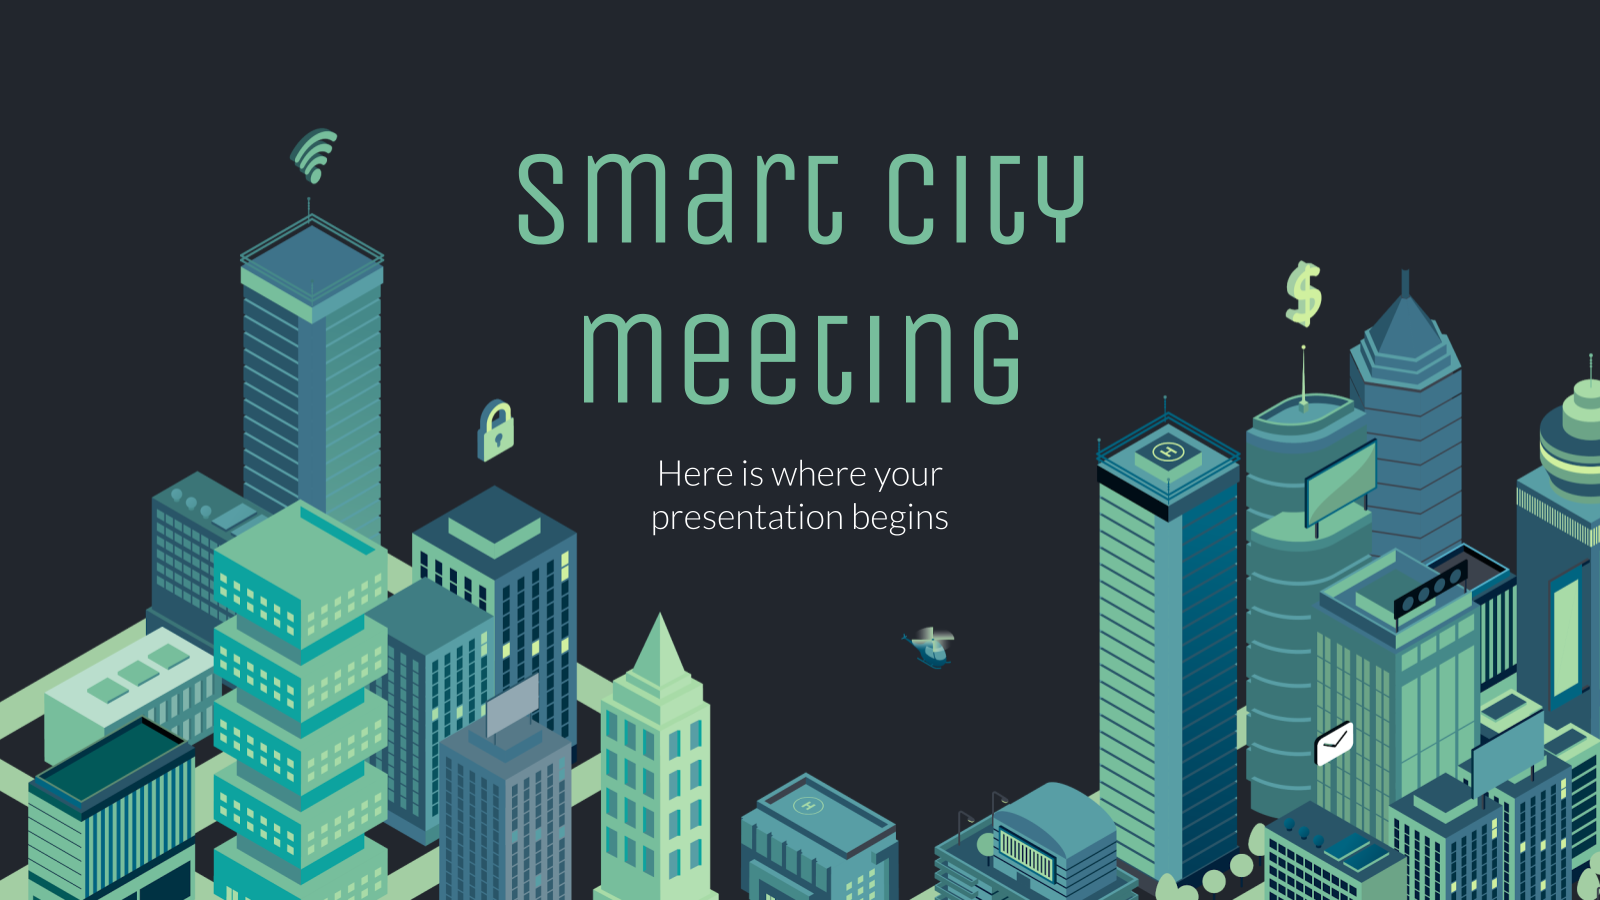 Smart City Company Meeting presentation template